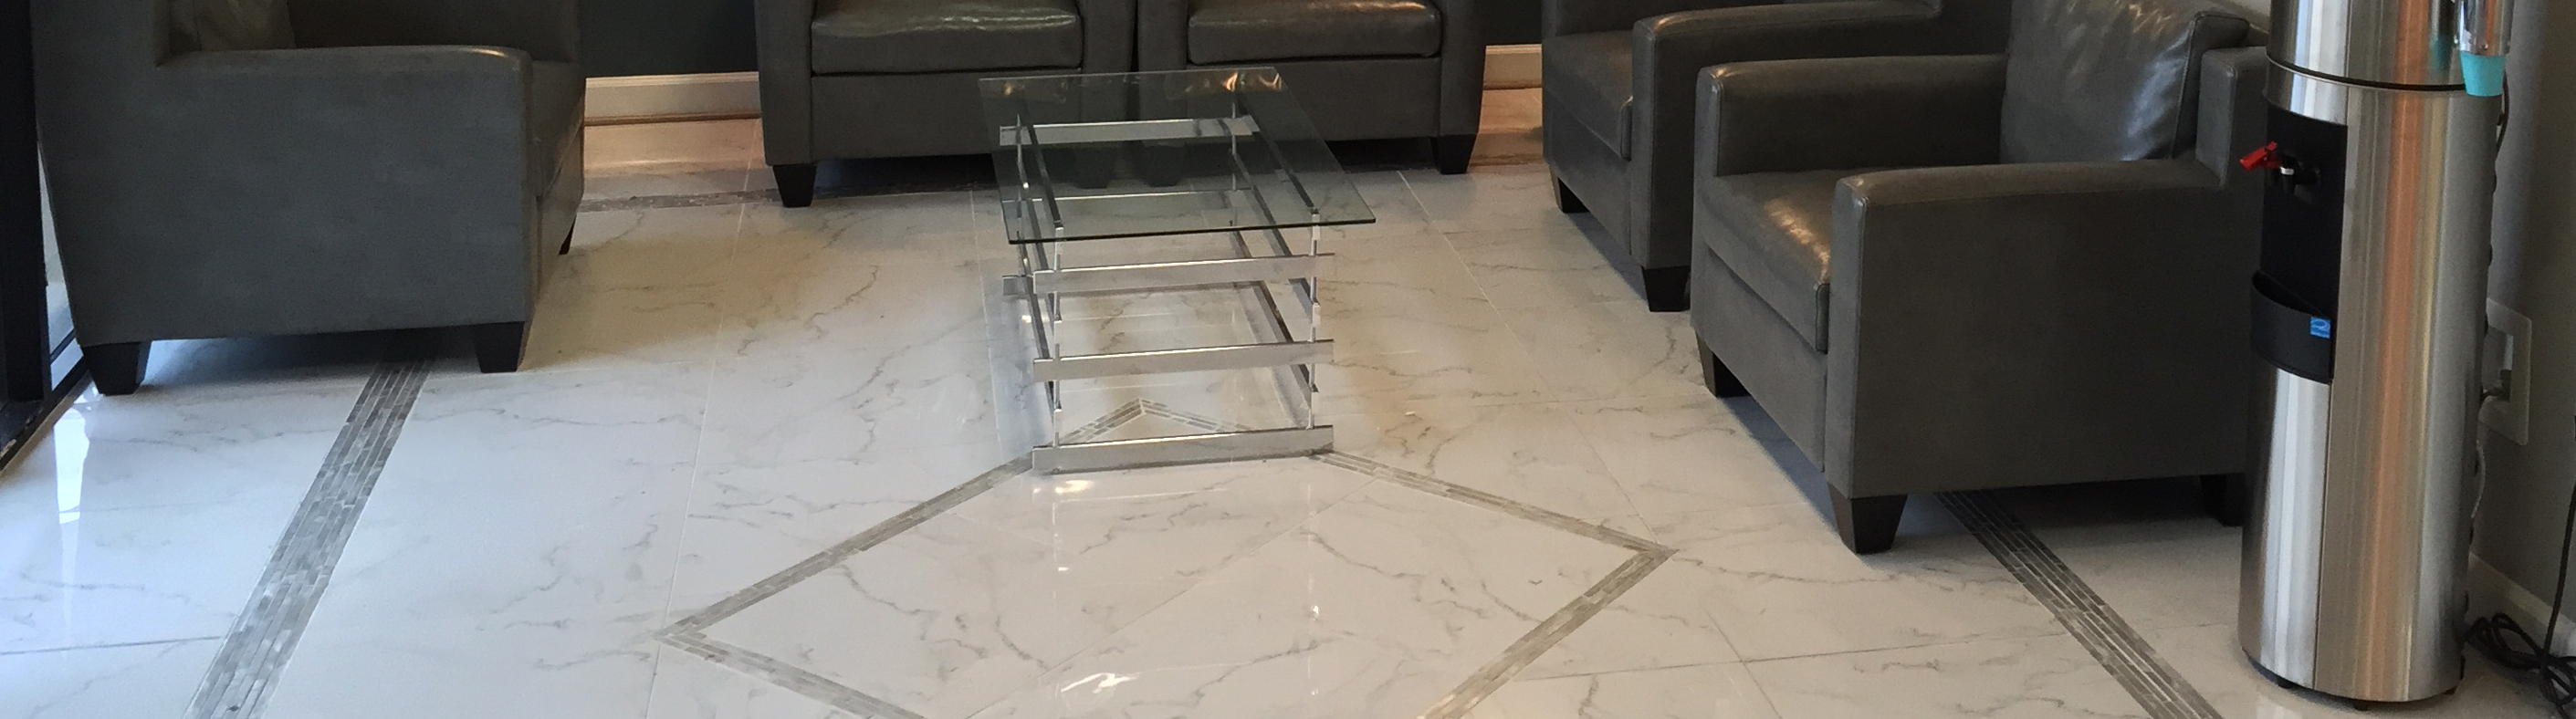 Marble Floor Cleaning, Tile & Stone - Clean Life Cleaning